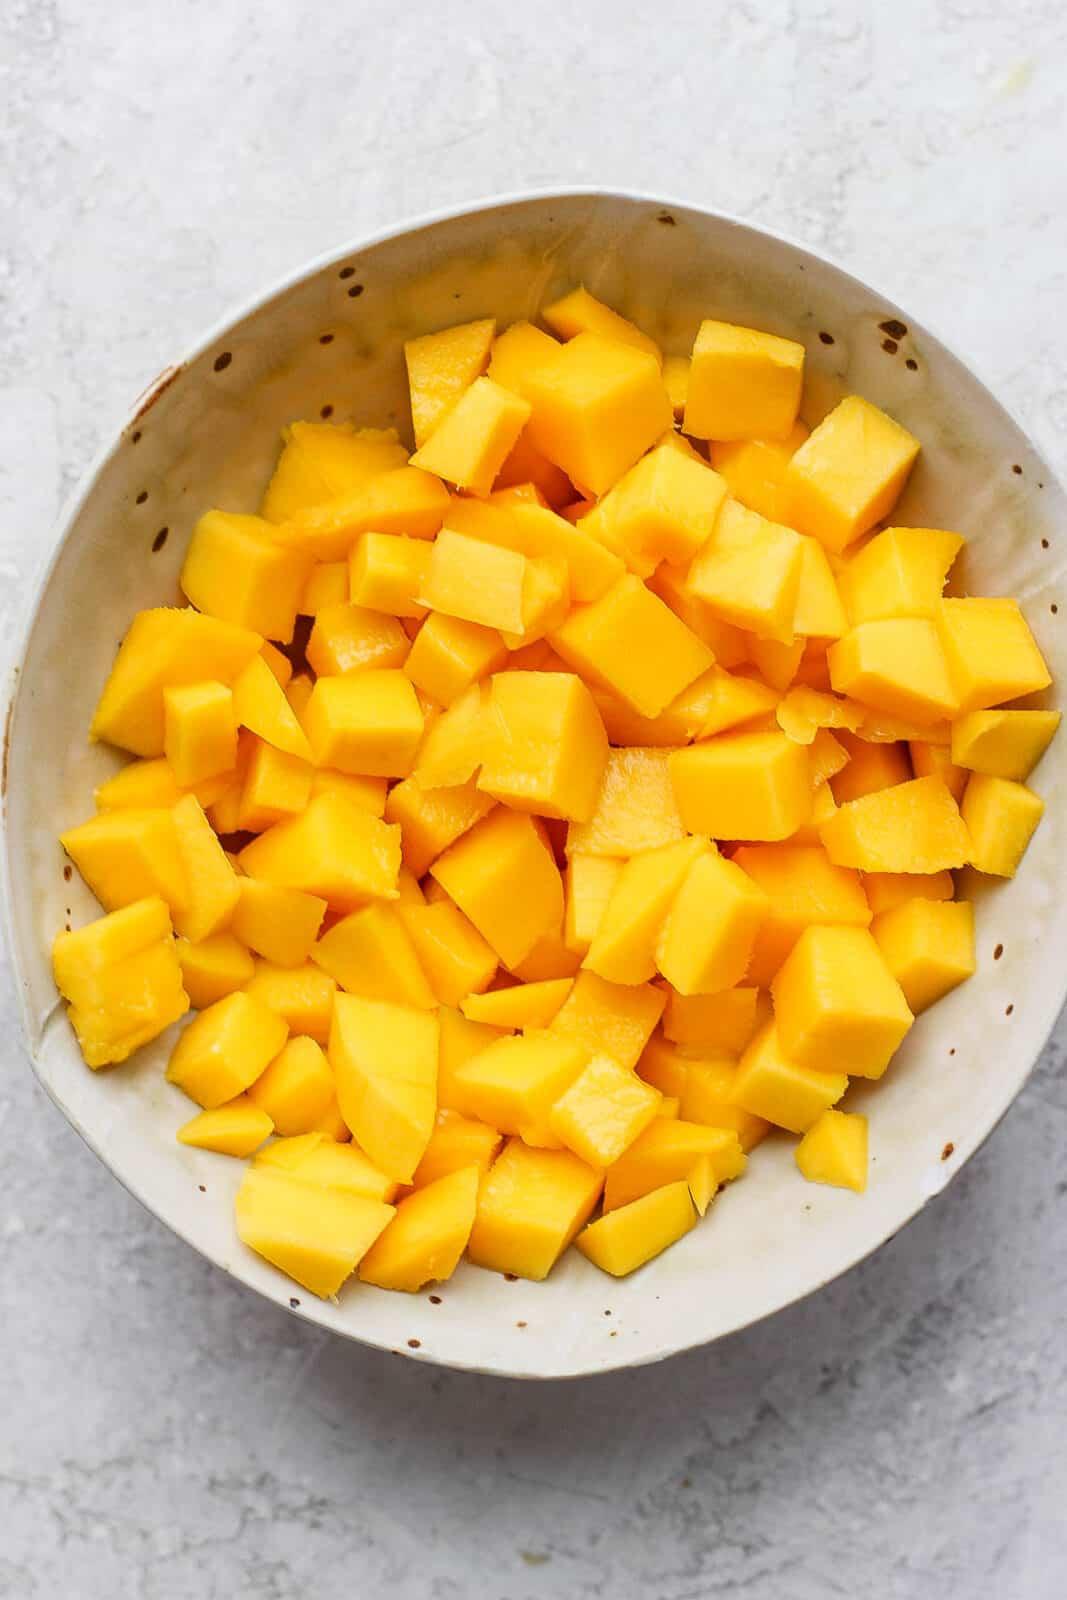 Cut up cubes of mango in a bowl.